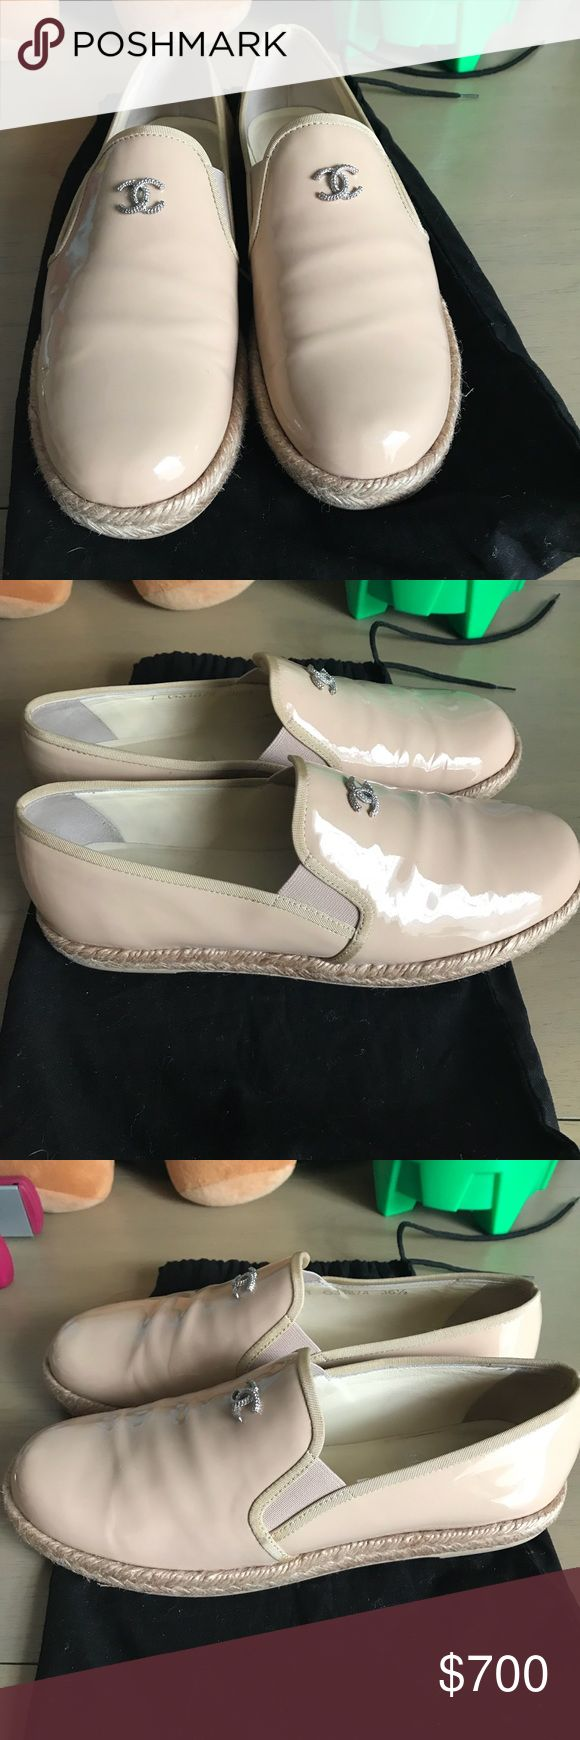 100% authentic Chanel moccasins sz 36.5 In very good condition 100% Chanel moccasins in size 36.5 for reference I'm sometimes size 6 or 36.5 all depends on the shoes those feet me just fine I only have it on for 3 times they very fashion and comfortable looks amazing on my price are very firm please don't send low offers will ignore them thank you for look 😊 chanel Shoes Moccasins